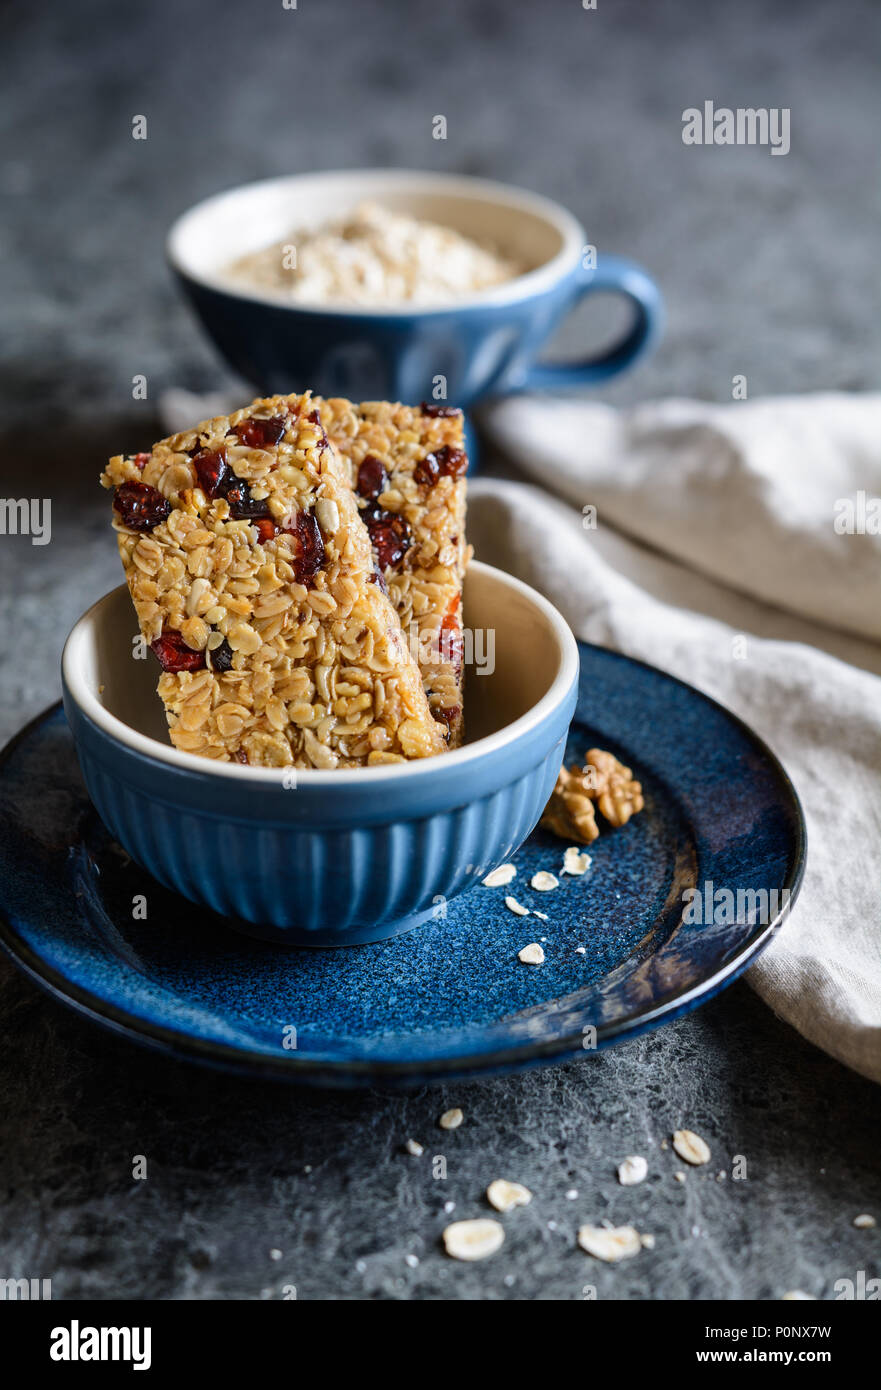 Healthy granola bars with cranberries, walnuts, sunflower seeds and raisins - Stock Image